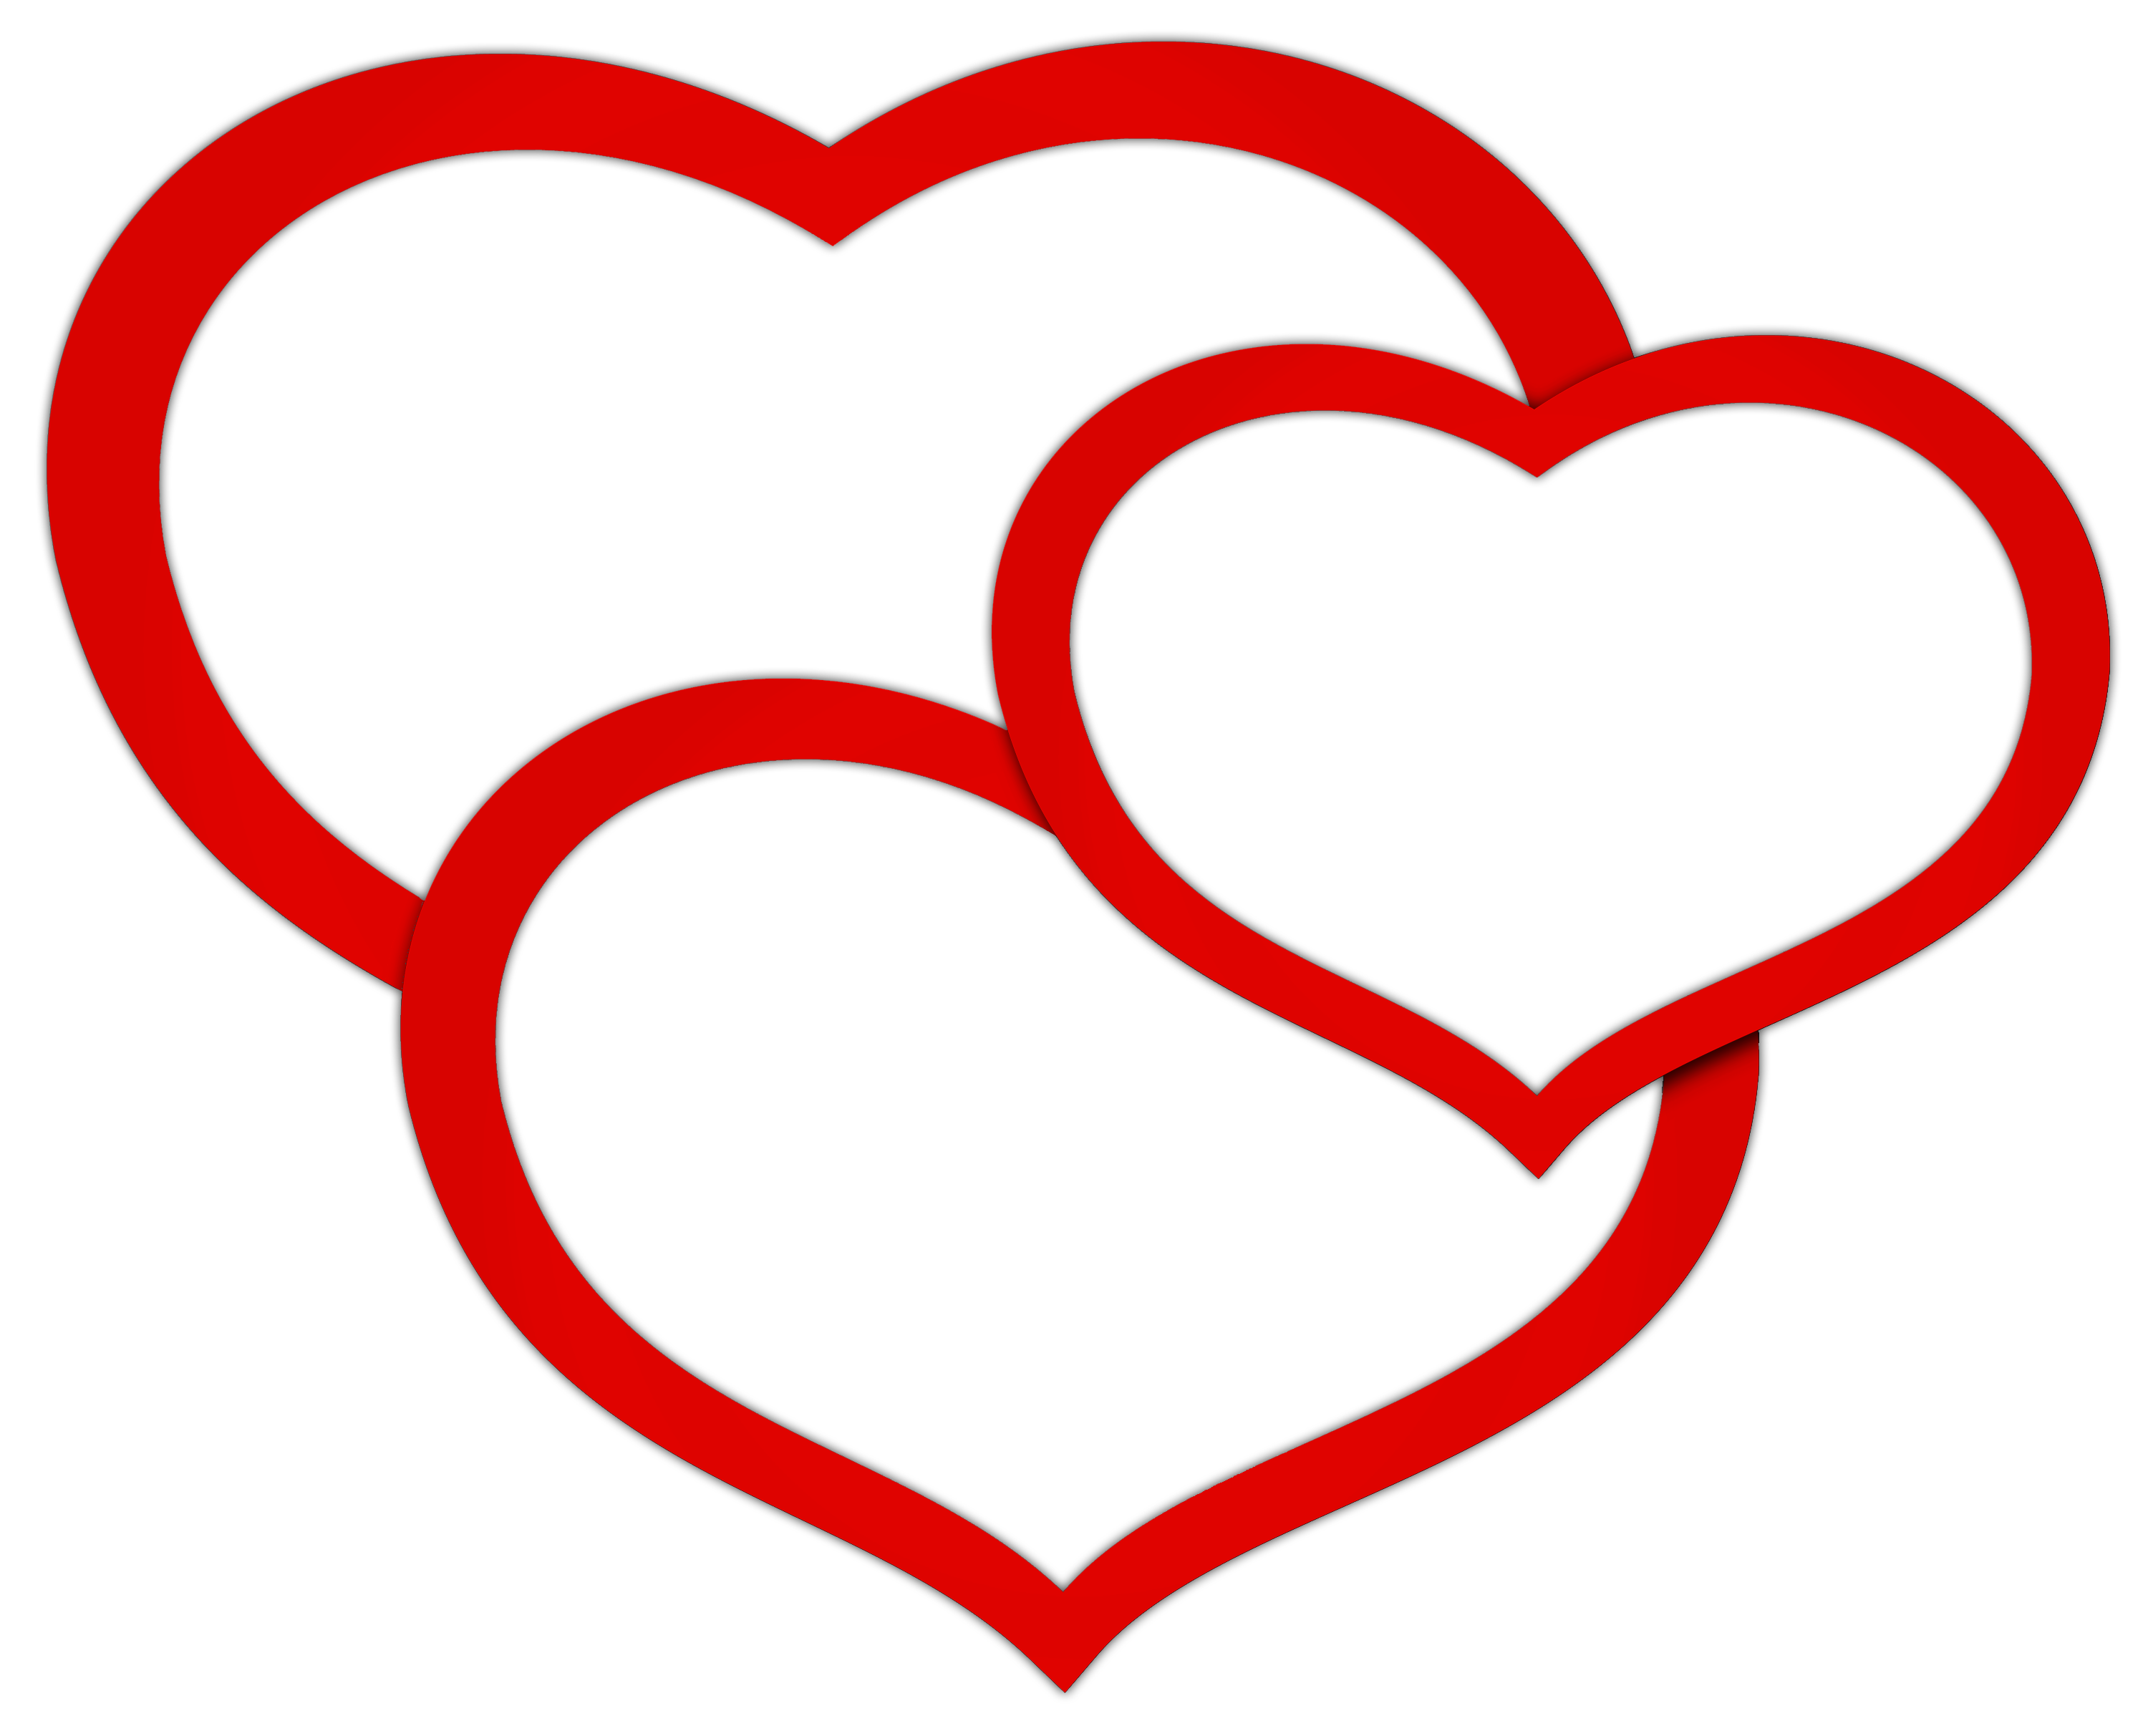 Triple clipart image library download Transparent Red Triple Hearts PNG Clipart Picture | Gallery ... image library download